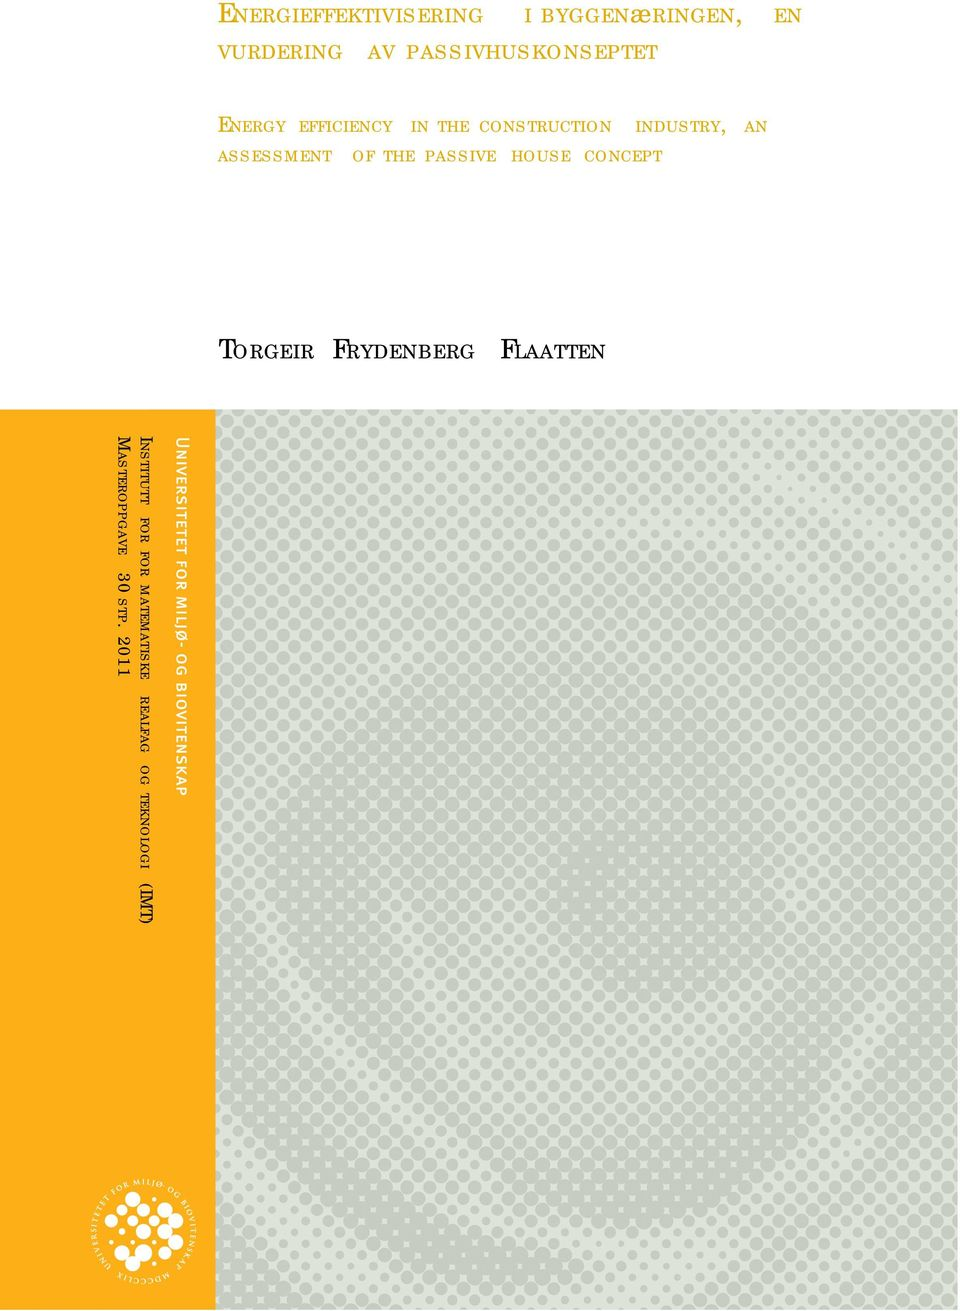 an assessment of the passive house concept Torgeir Frydenberg